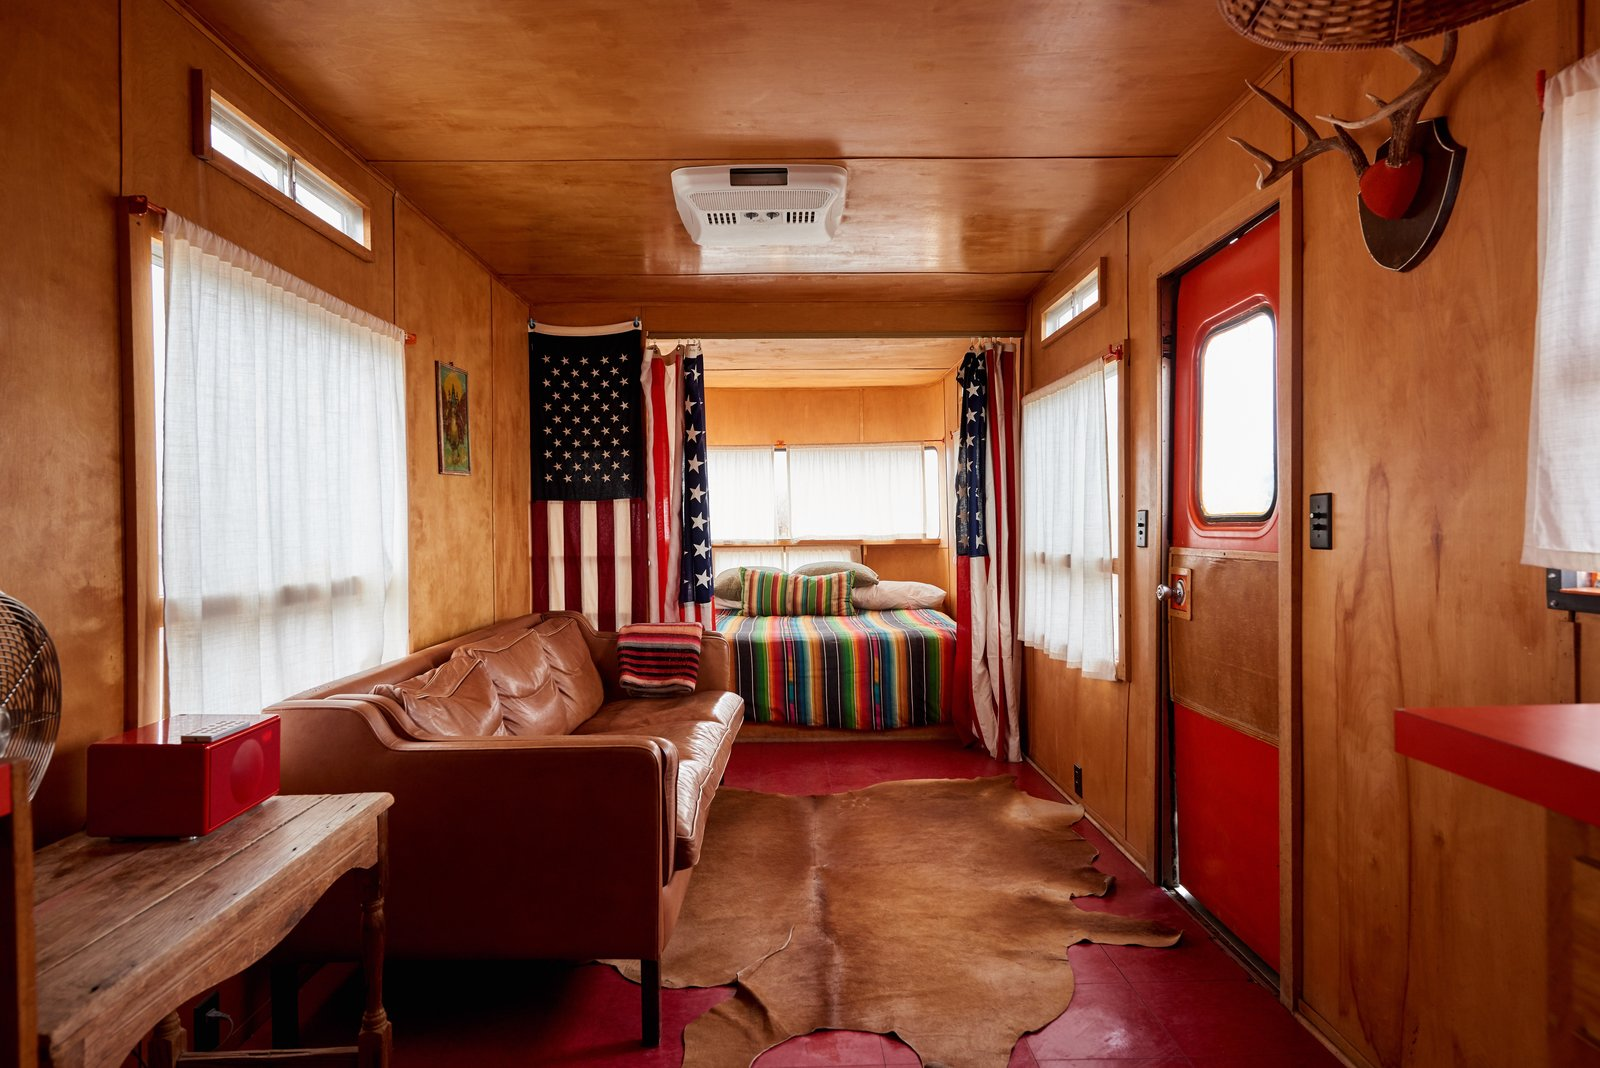 Living Room, Sofa, Rug Floor, and Console Tables Another peek inside a vintage trailer.    Photo 8 of 12 in Let Your Creativity Soar at This Eclectic Hotel With Tents, Tepees, Yurts, and Trailers